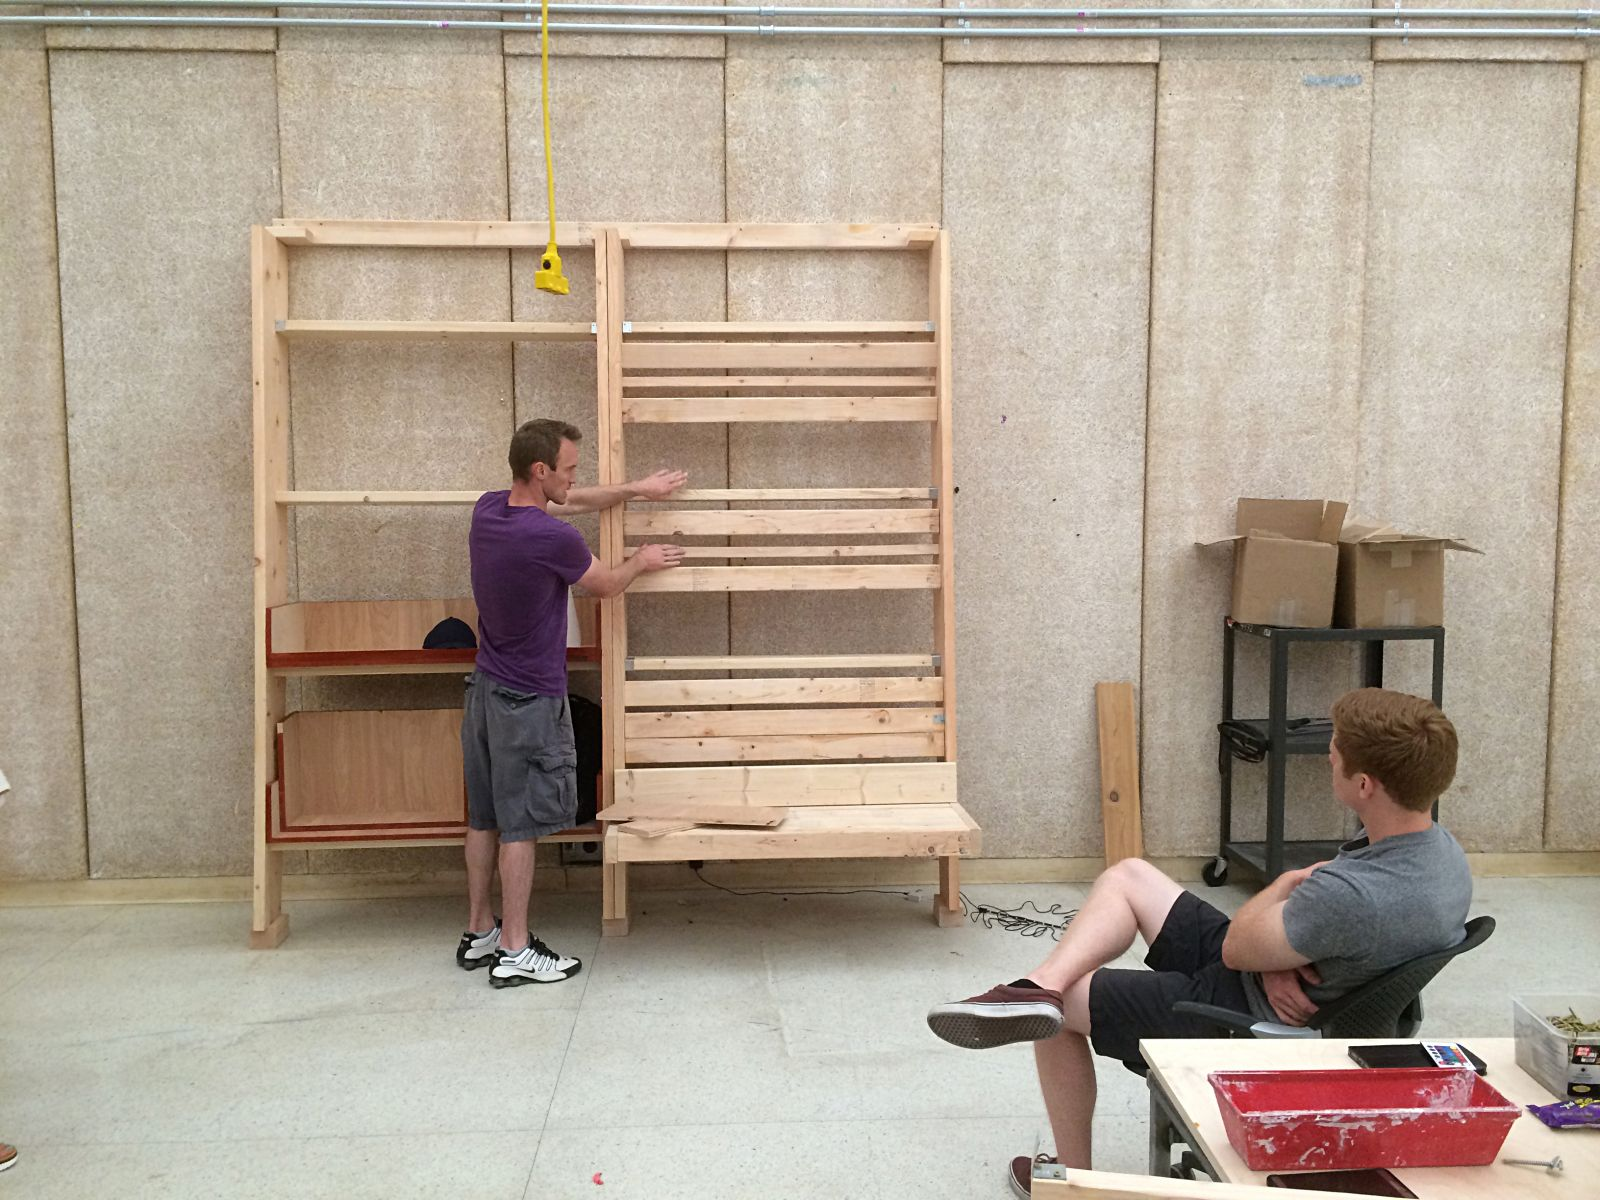 Architecture graduate students Mark Moeckl, standing, and Shawn Barron use a full-scale mockup built at Iowa State to evaluate the spacing of the bench backrests, shelving and louvers.